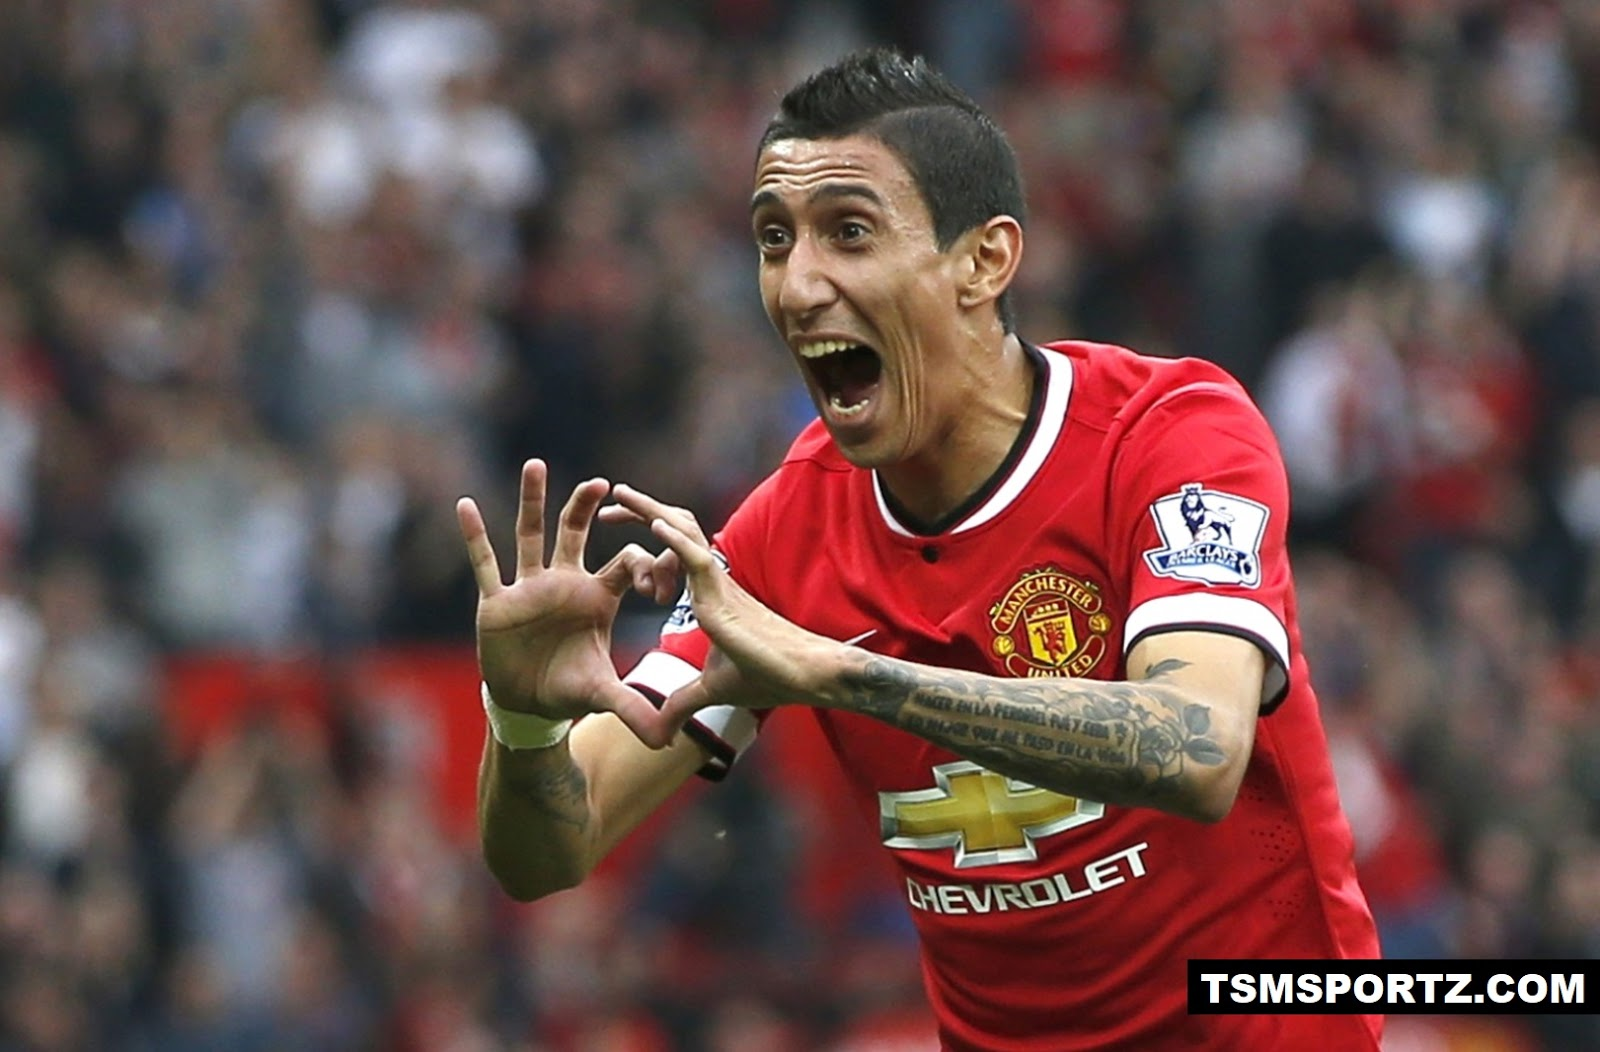 2014 Manchester United spend big money to buy Angel di Maria